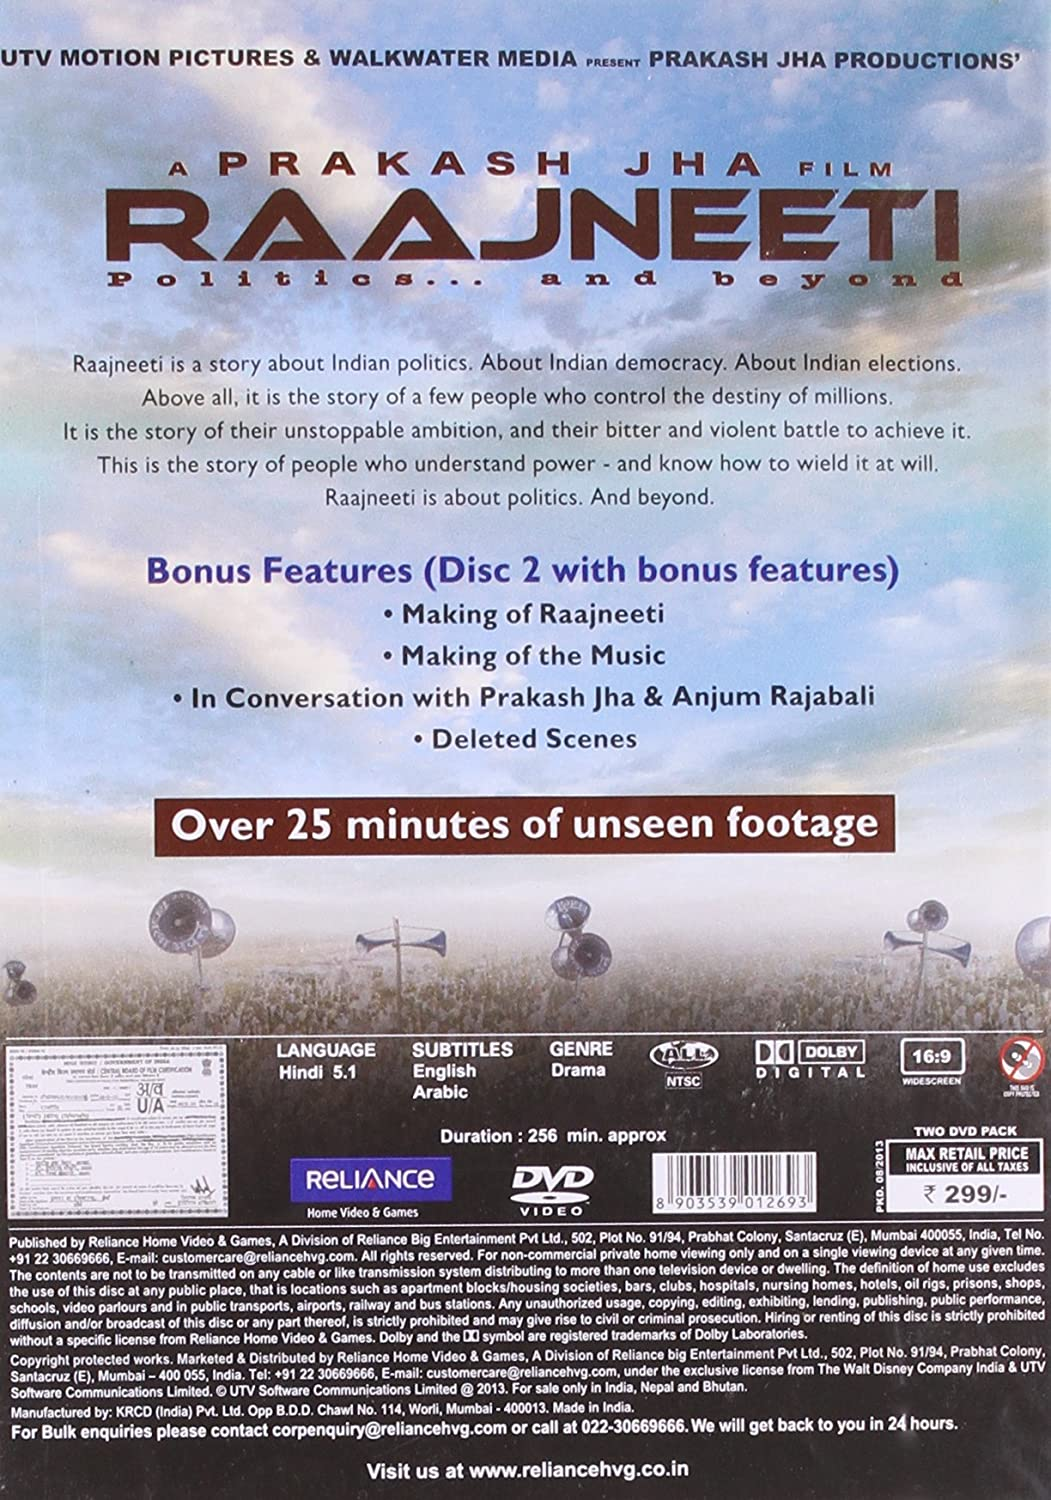 Amazon: Buy Rajneeti Dvd, Bluray Online At Best Prices In India   Movies & Tv Shows